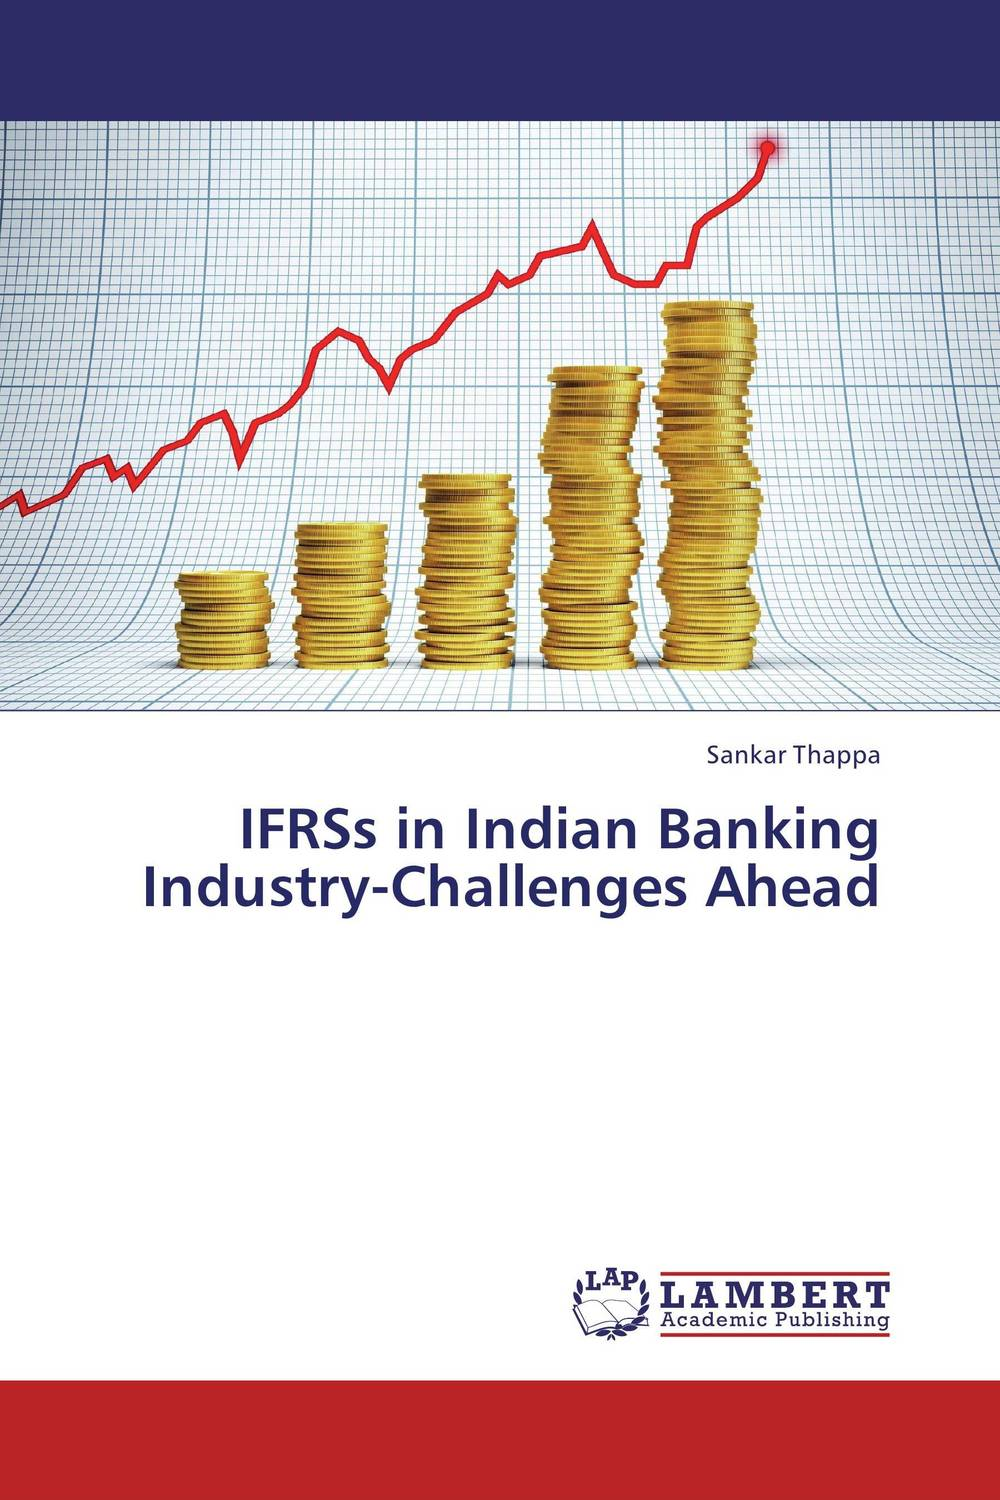 IFRSs in Indian Banking Industry-Challenges Ahead 95% new for air conditioning computer board circuit board kfr 120lw sy sa out check dybh v2 1 good working